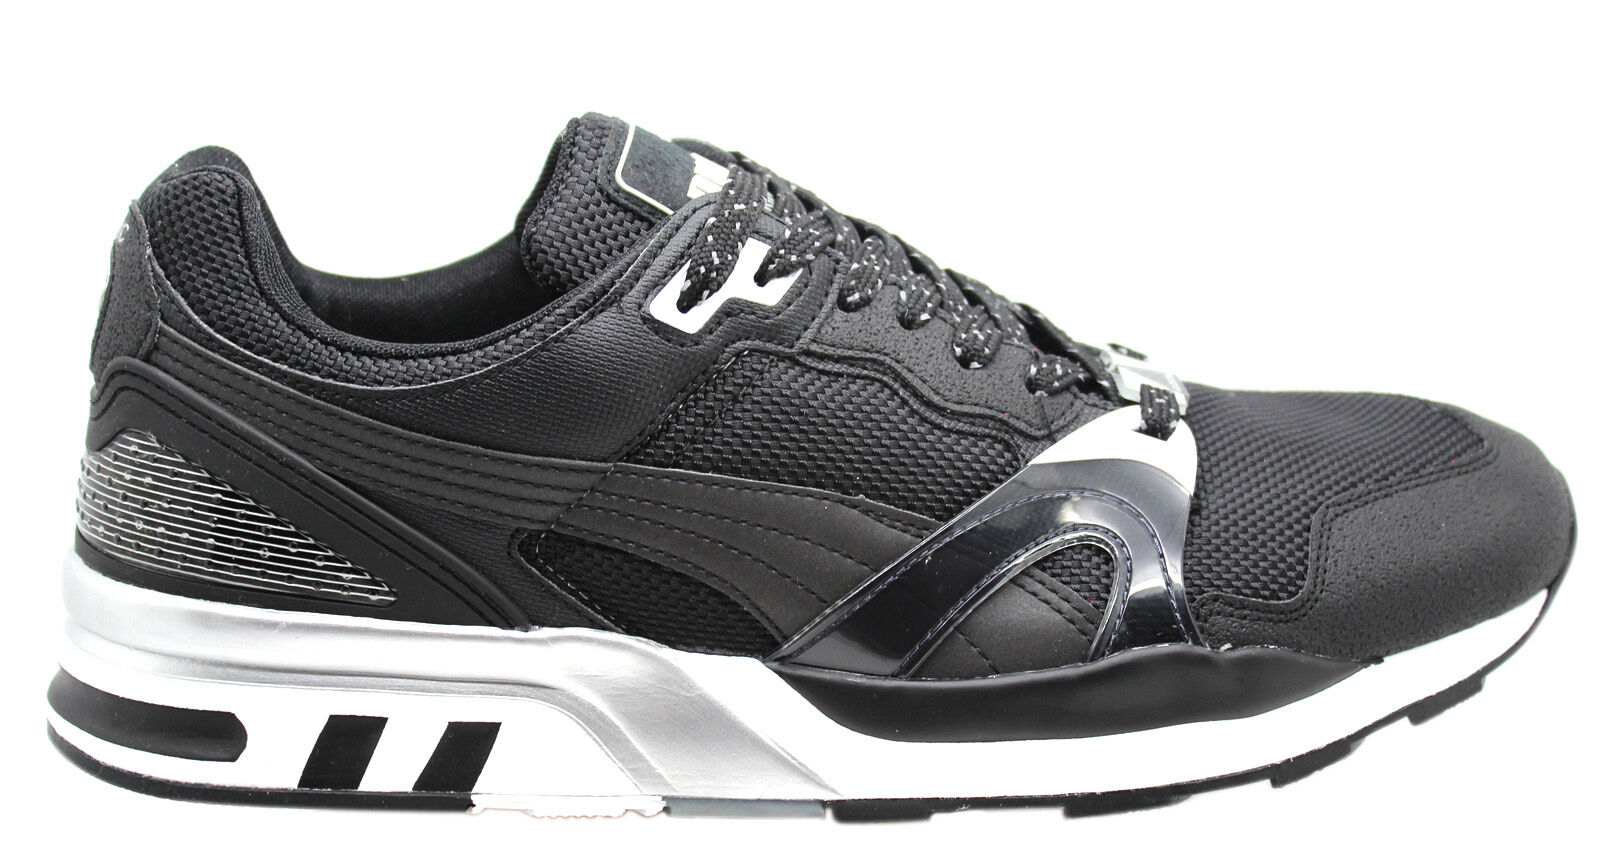 outlet store 25b10 a2351 Puma Trinomic XT 2 Plus Tech Mens Trainers Black Mesh Lace Up